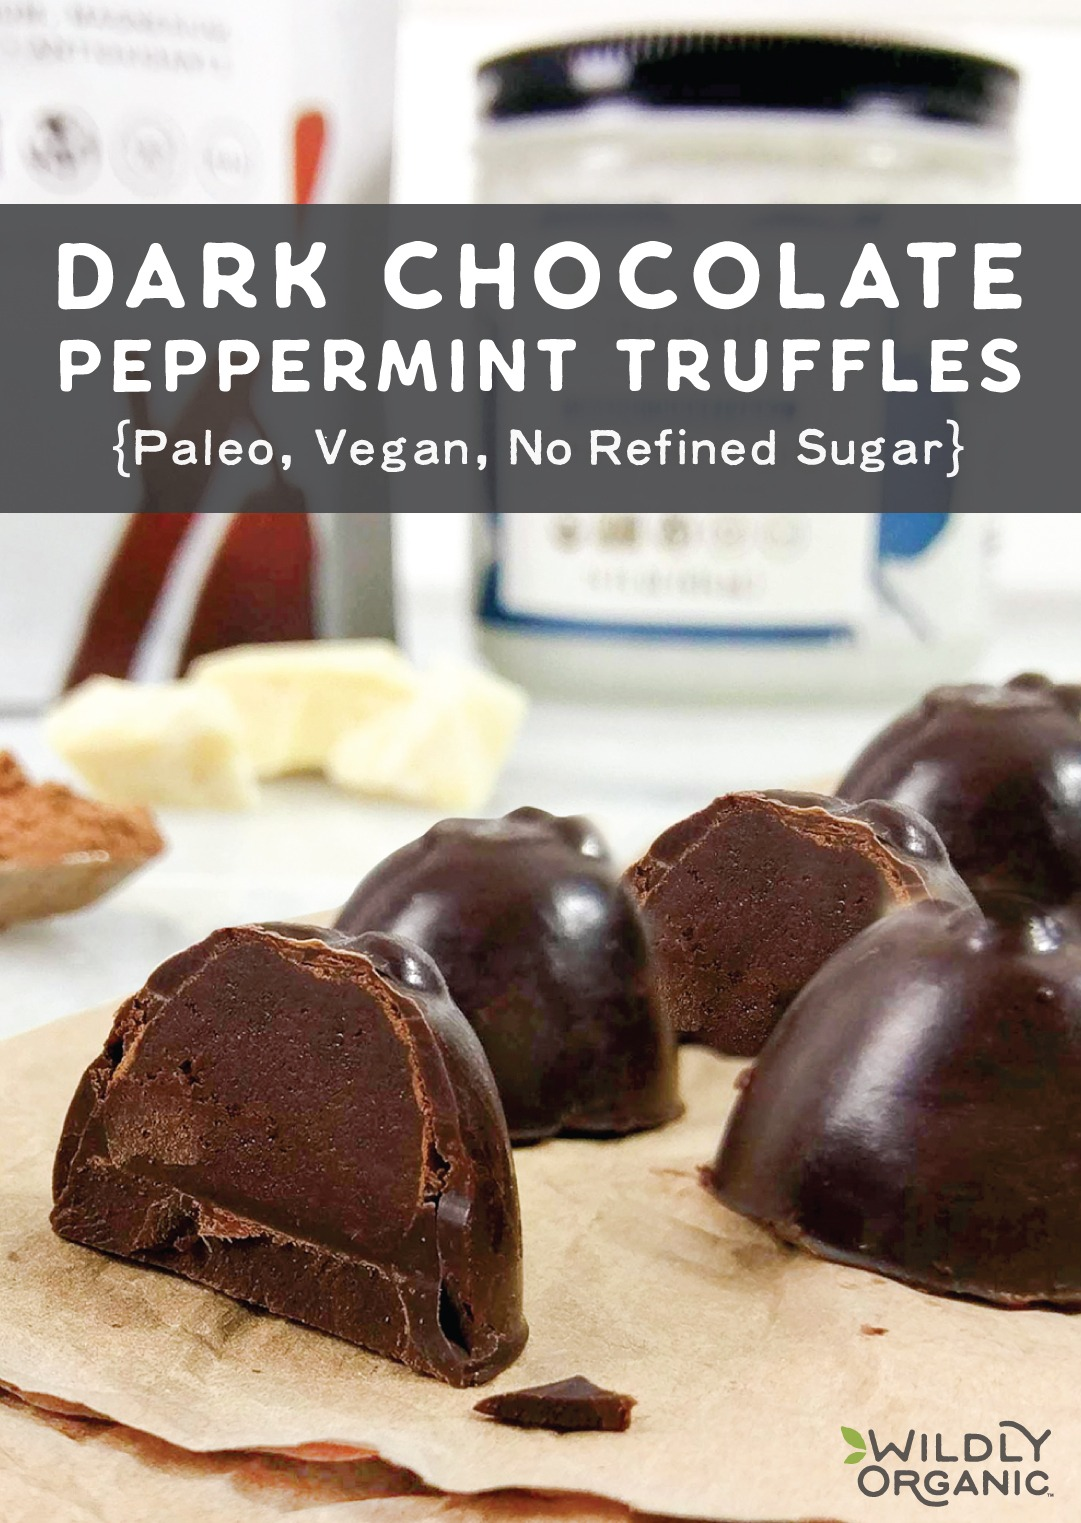 Dark chocolate peppermint truffles with a chocolate coating on a table with Wildly Organic Raw Cacao Butter in the background.